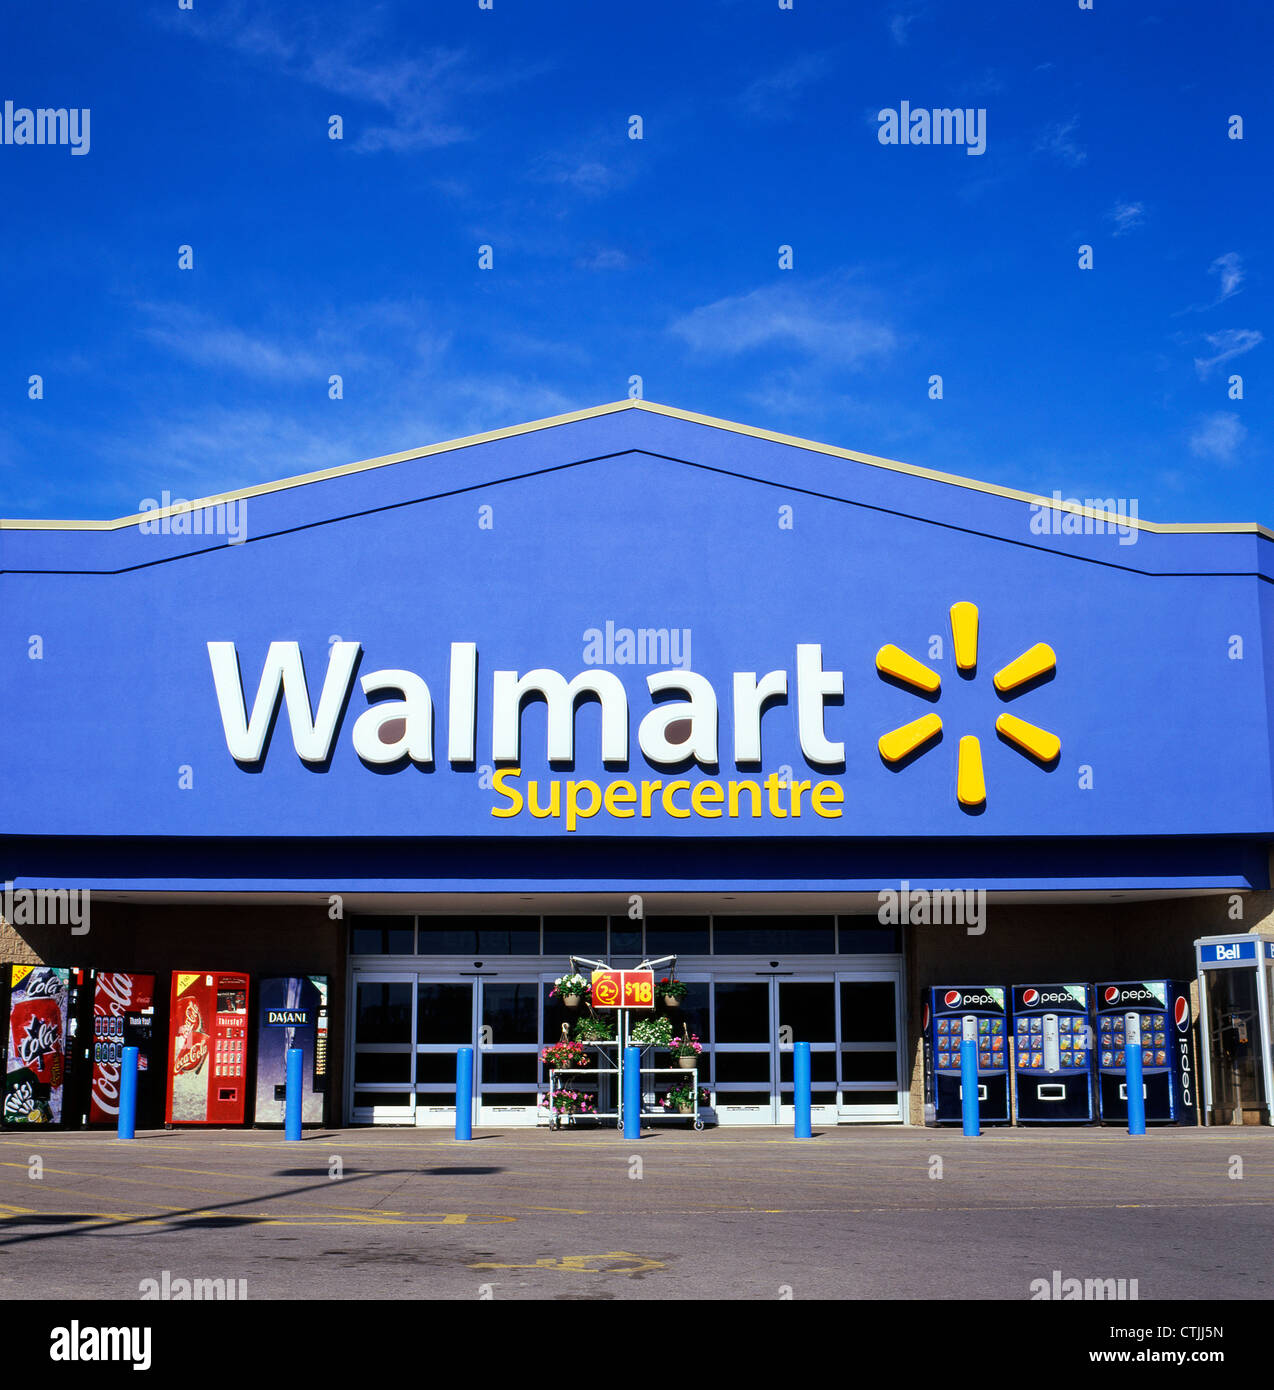 walmart sign stock photos walmart sign stock images alamy front view of a walmart supercentre store exterior sign logo ontario kathy dewitt stock